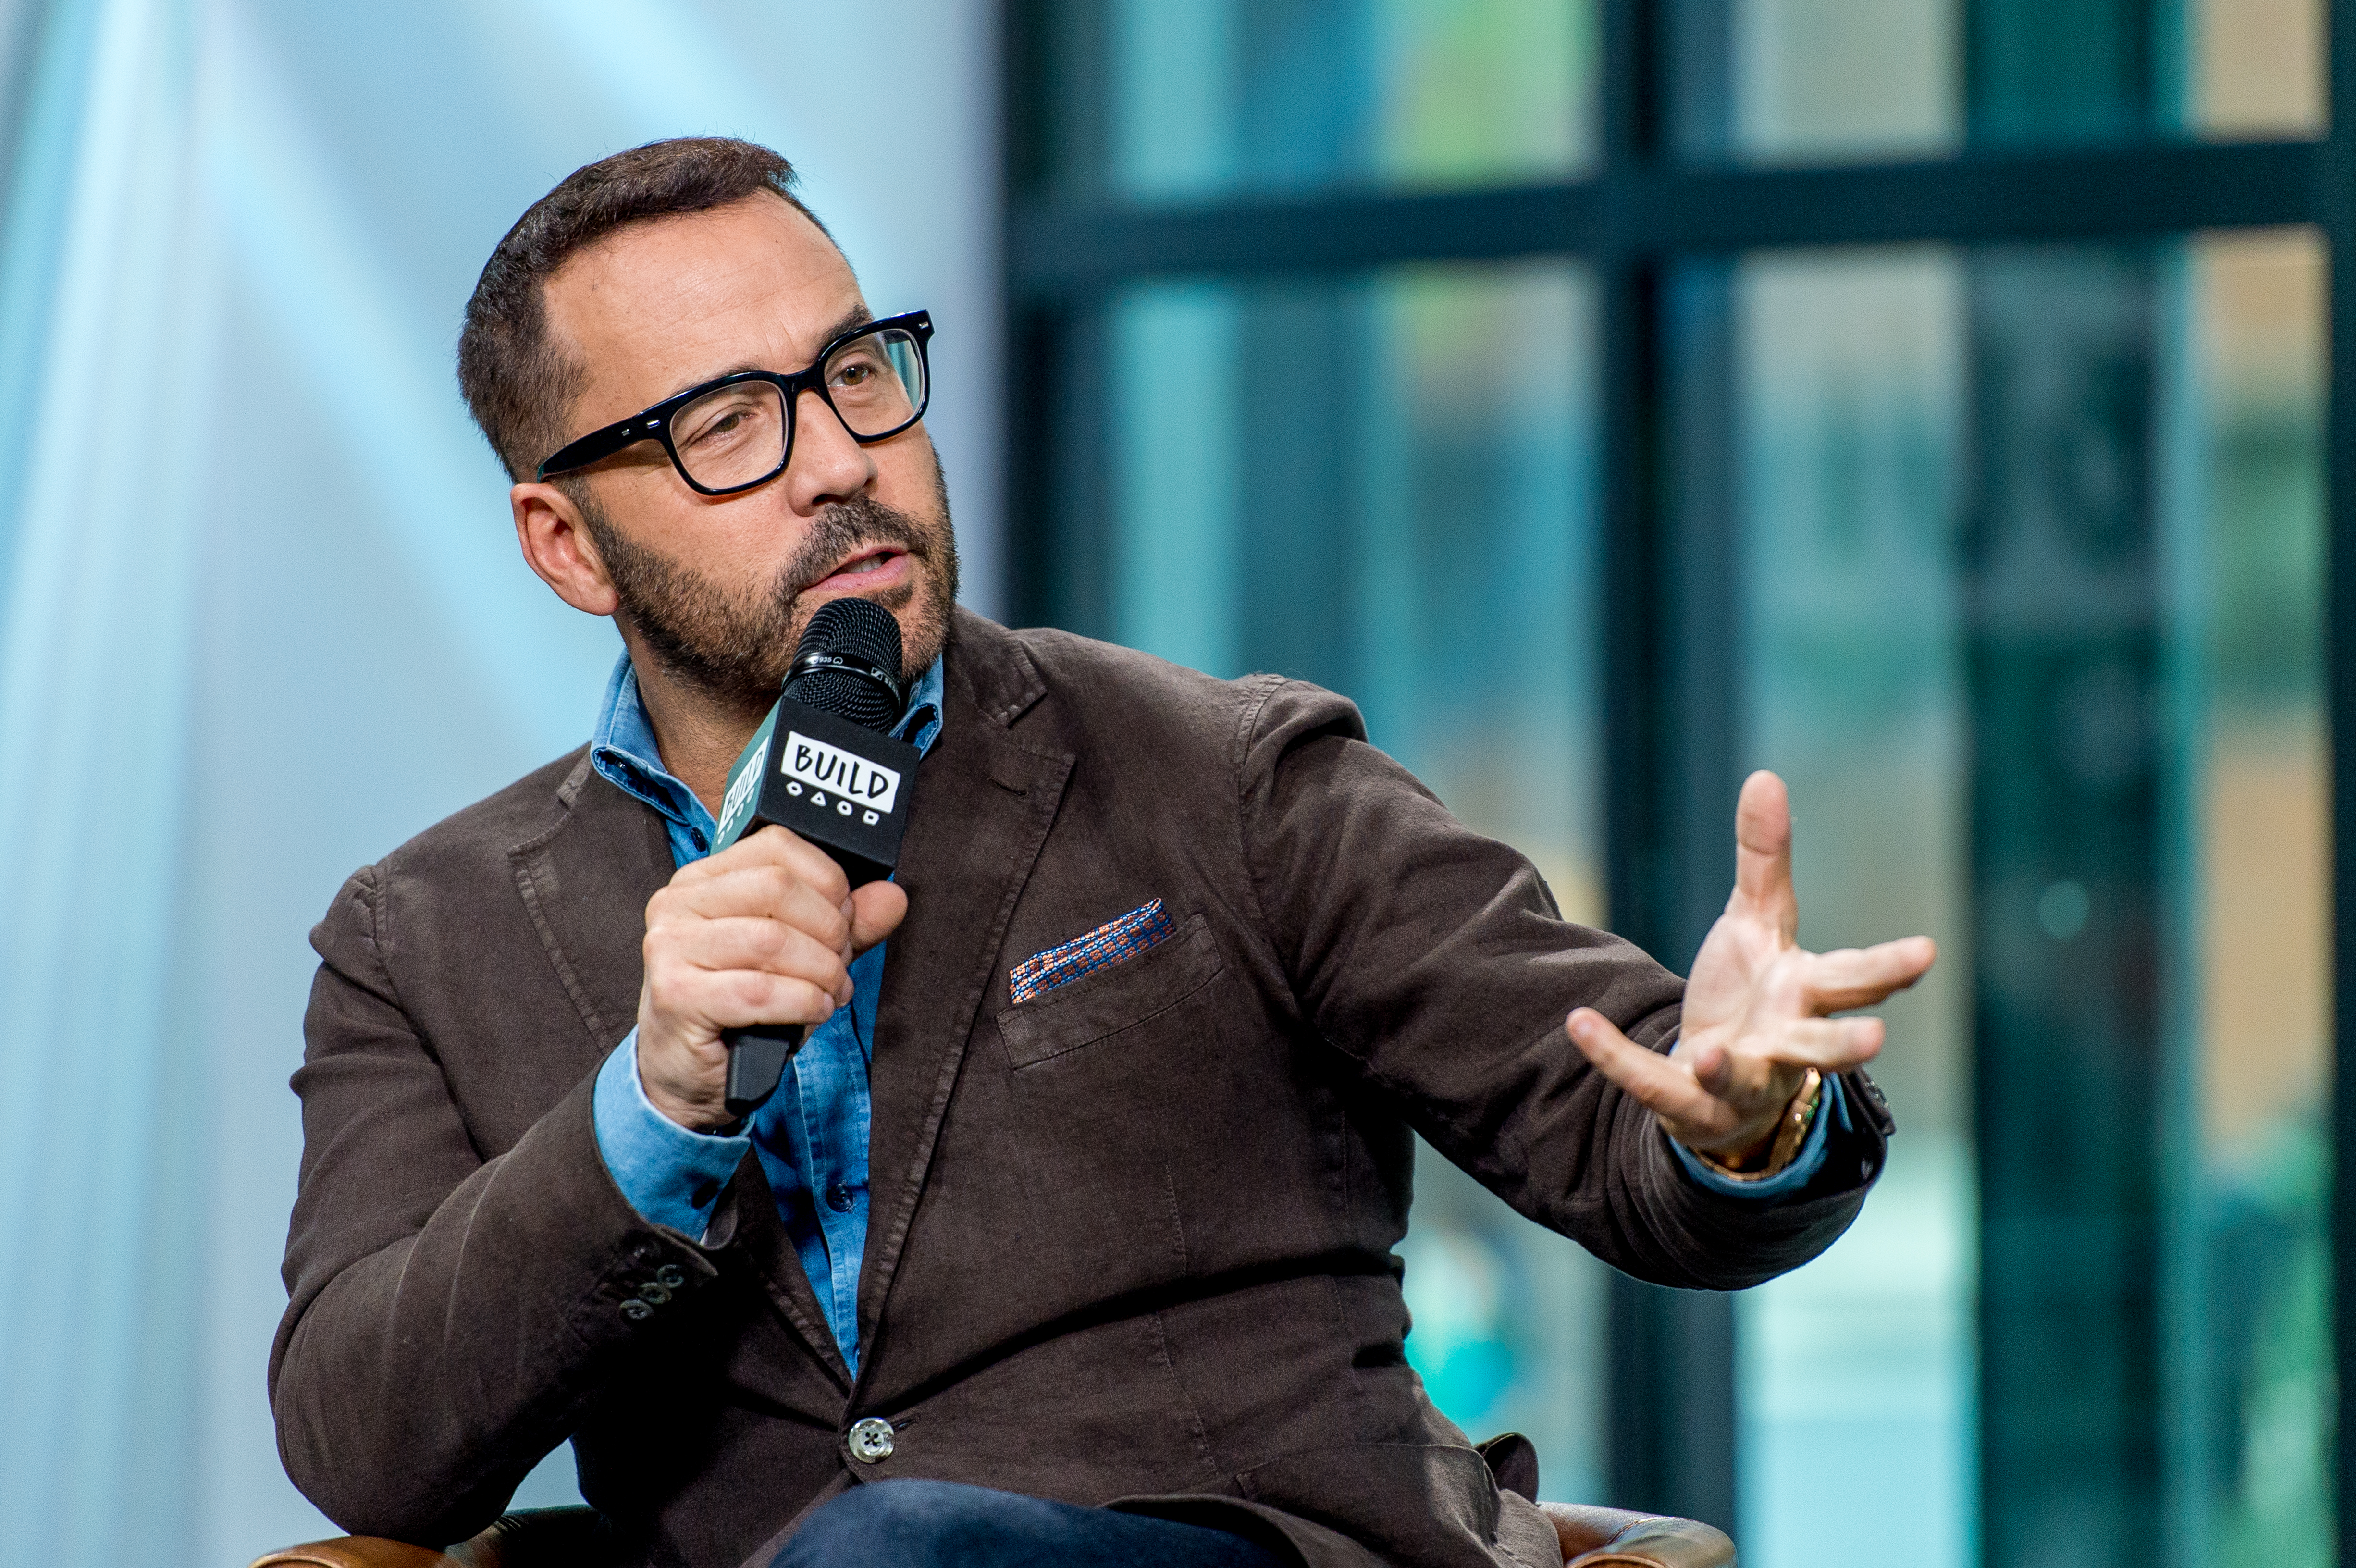 Jeremy Piven discusses  Wisdom Of The Crowd  with the Build Series at Build Studio in New York City on Oct. 31, 2017.